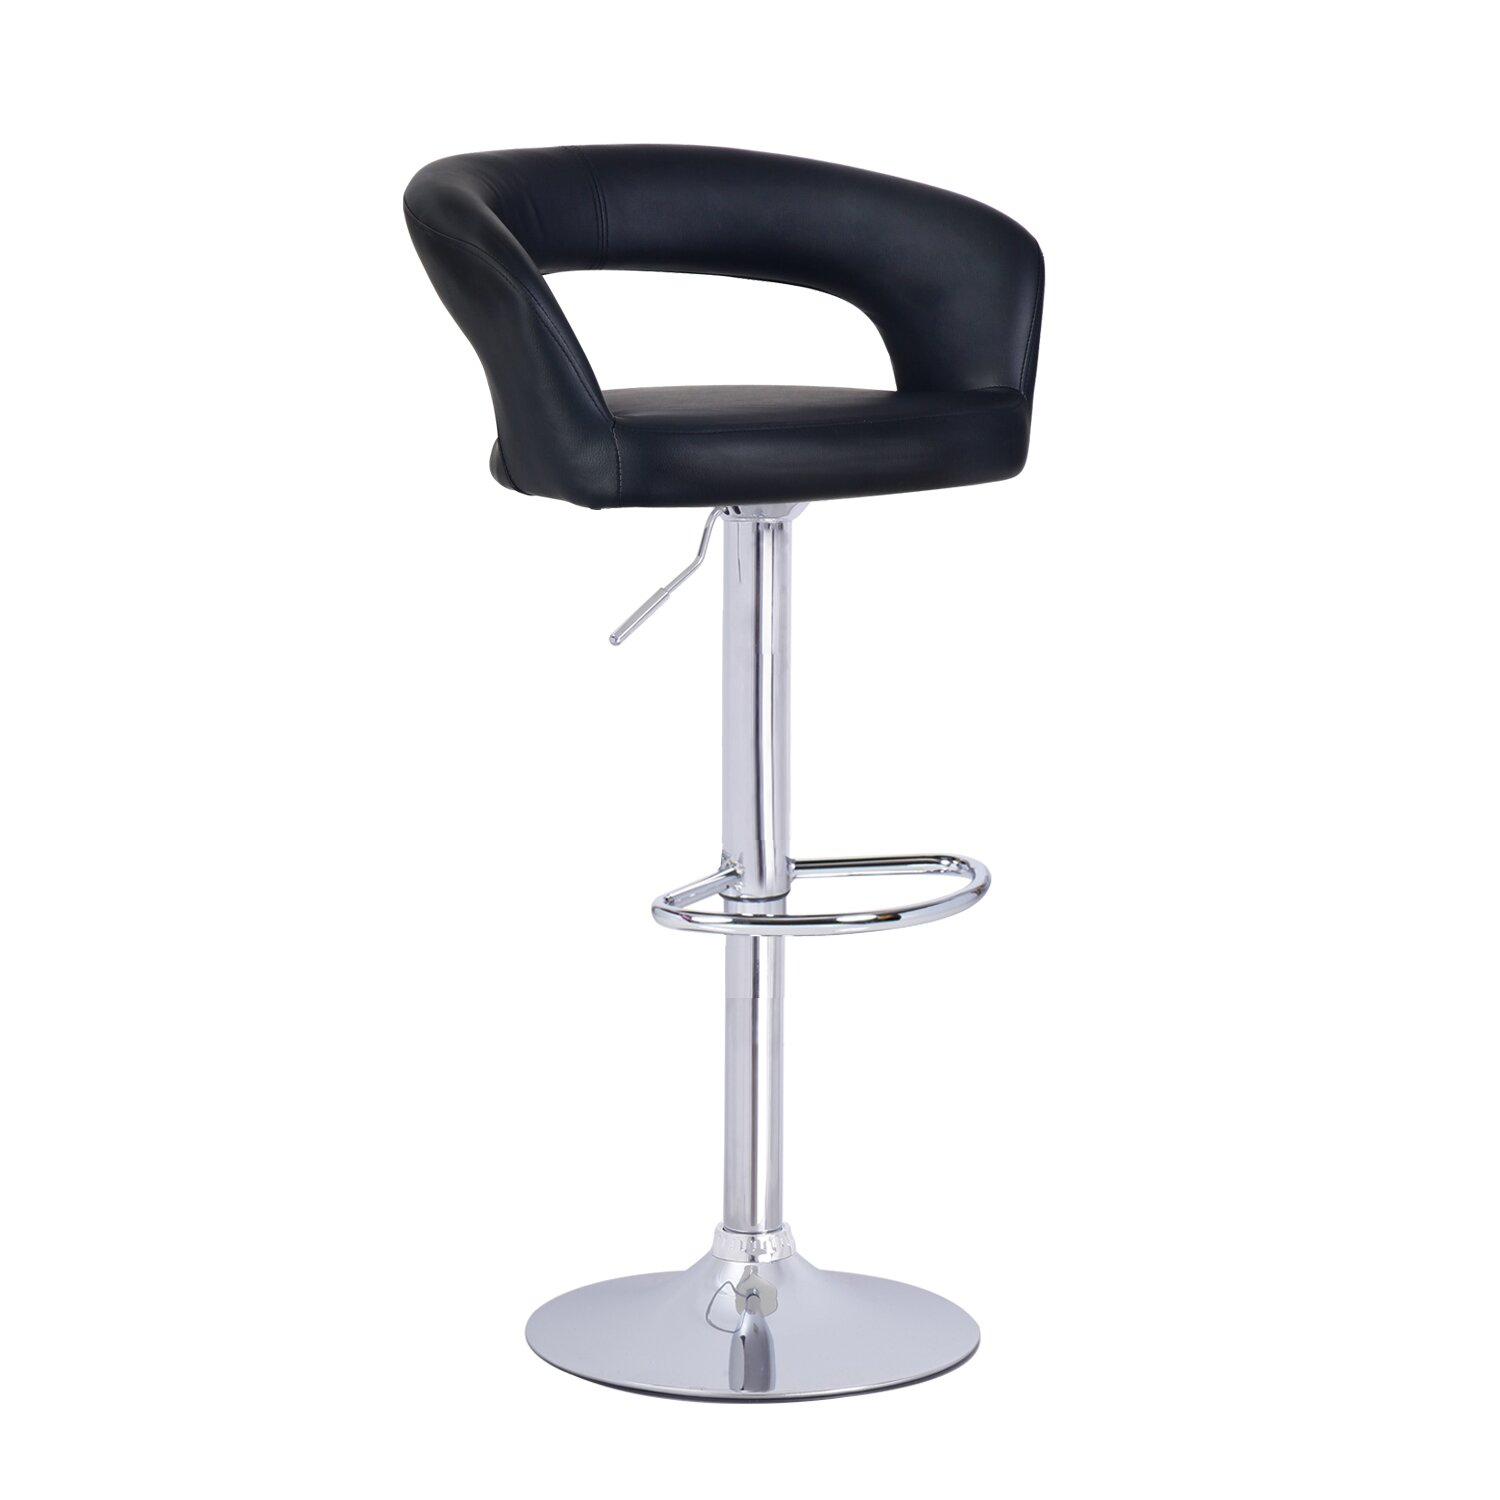 Adecotrading adjustable height swivel bar stool reviews for Counter height swivel bar stools